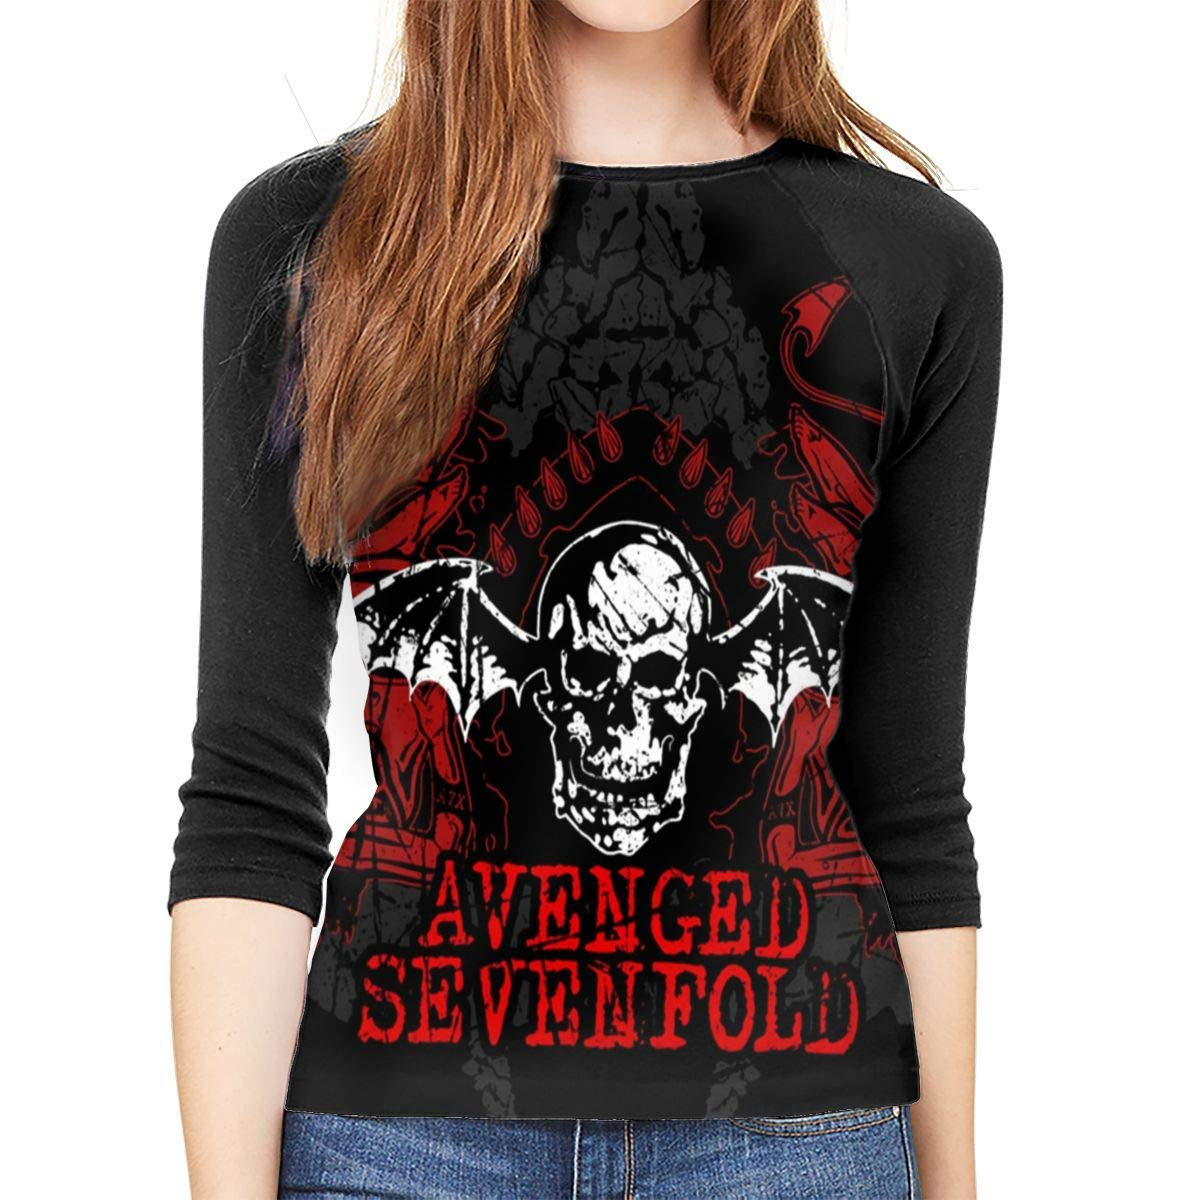 AsziSham Avenged Sevenfold Women's 3/4-Sleeve Raglan T-Shirt Shirt Casual Round Neck Top T-Shirt Black